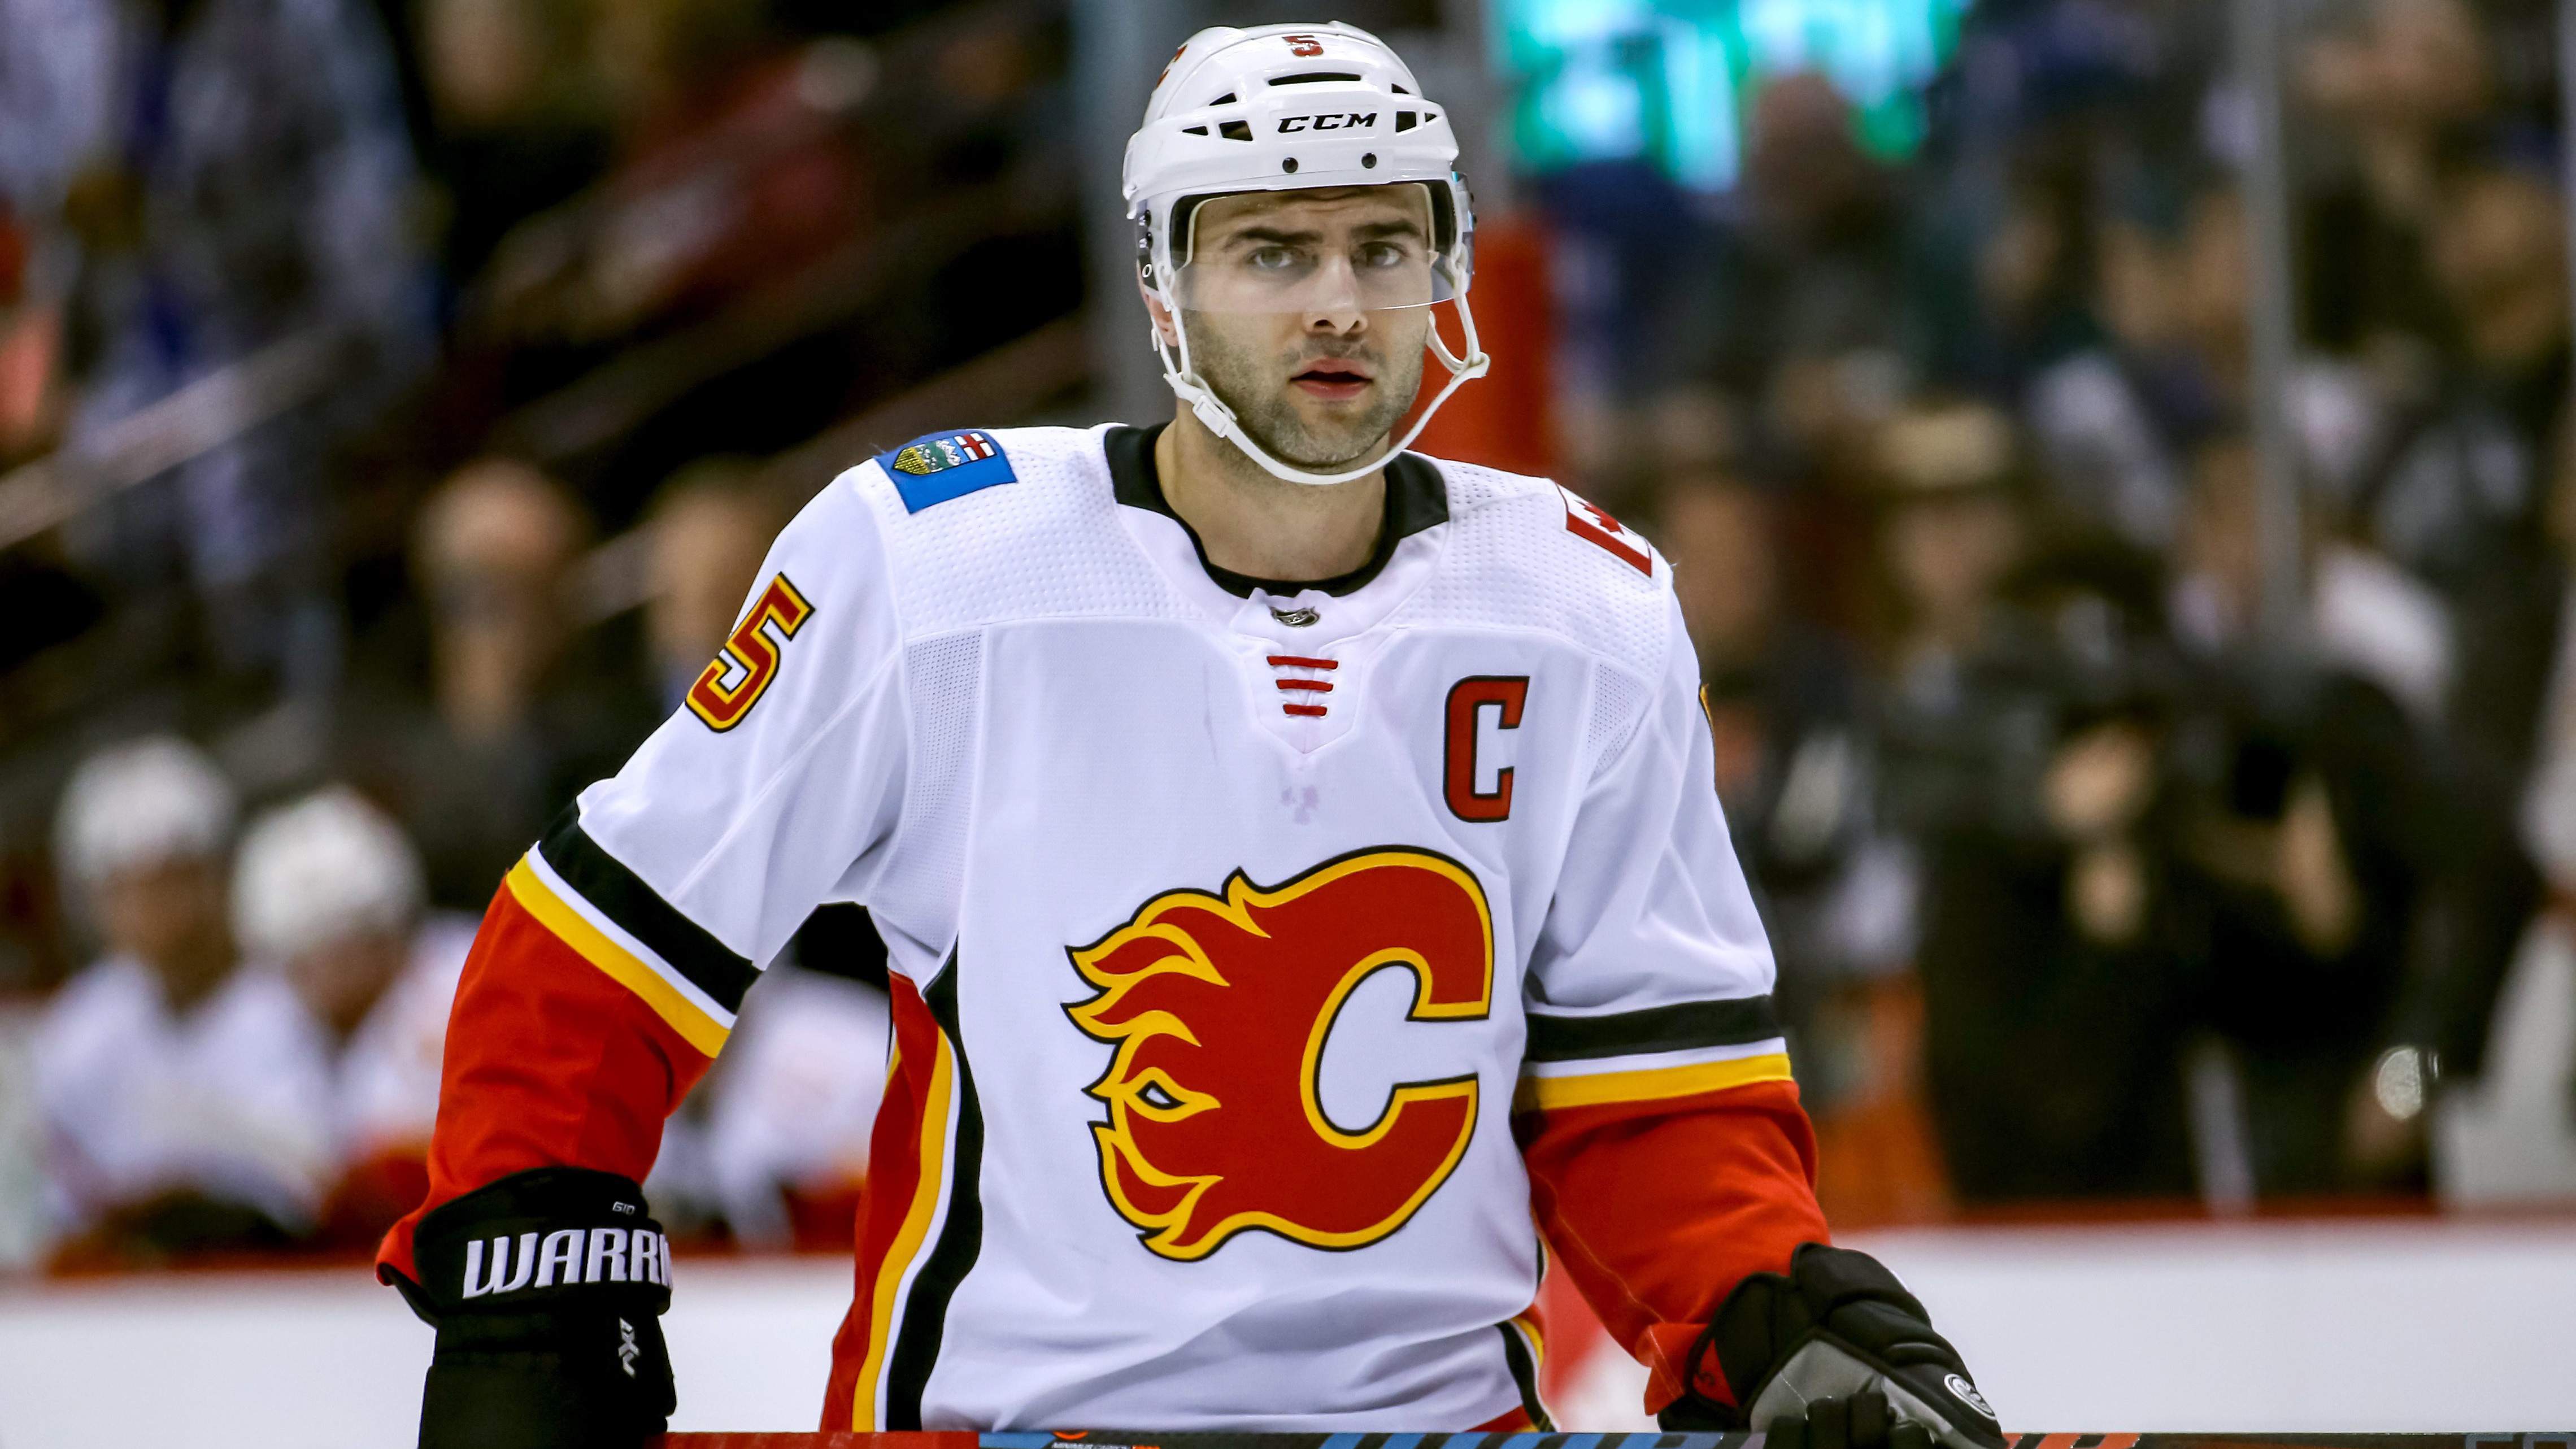 Flames' Giordano adds to popularity with permanent move to Calgary